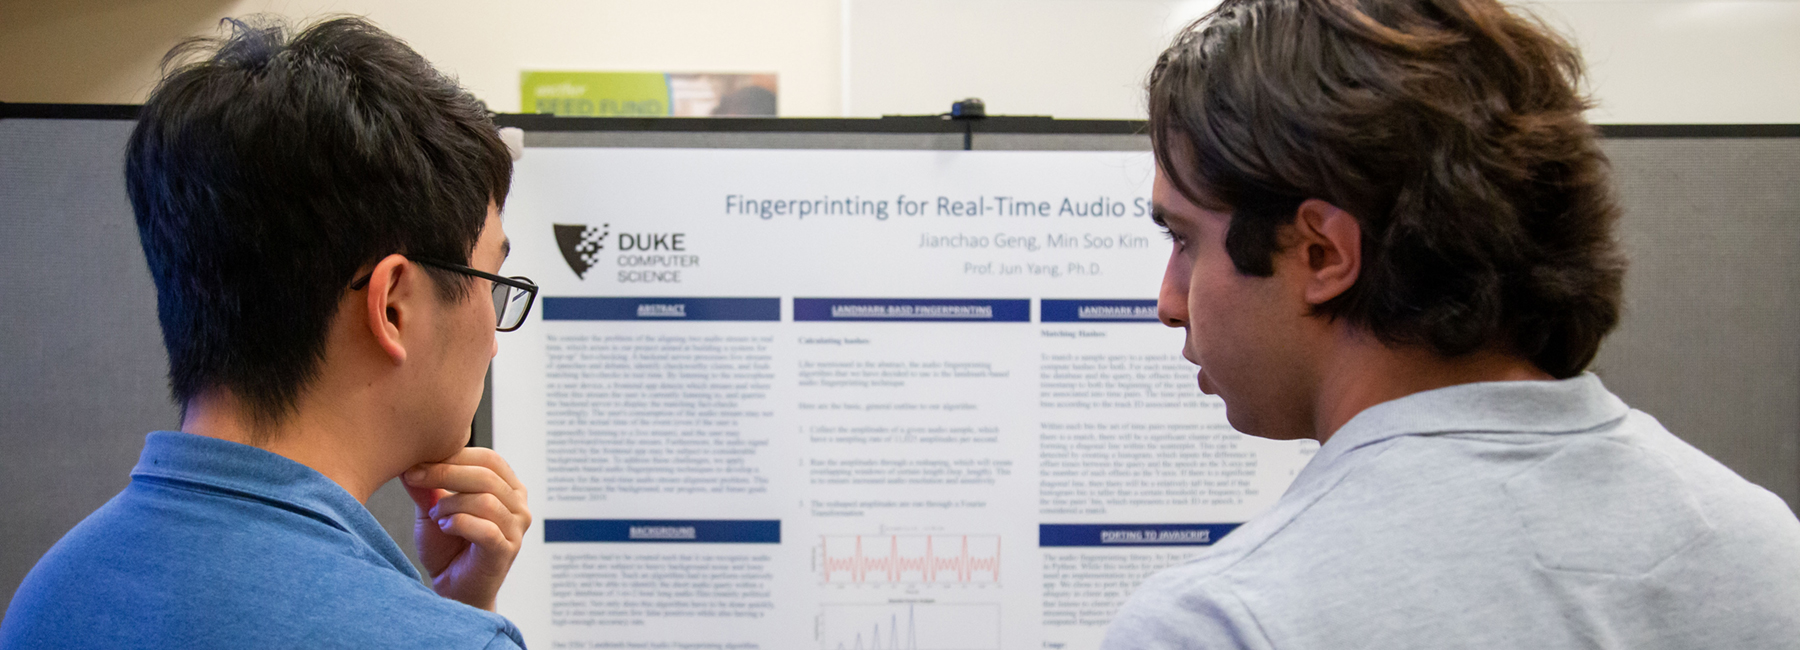 Ugrad Summer 2019 Research-Fingerprinting Project Poster